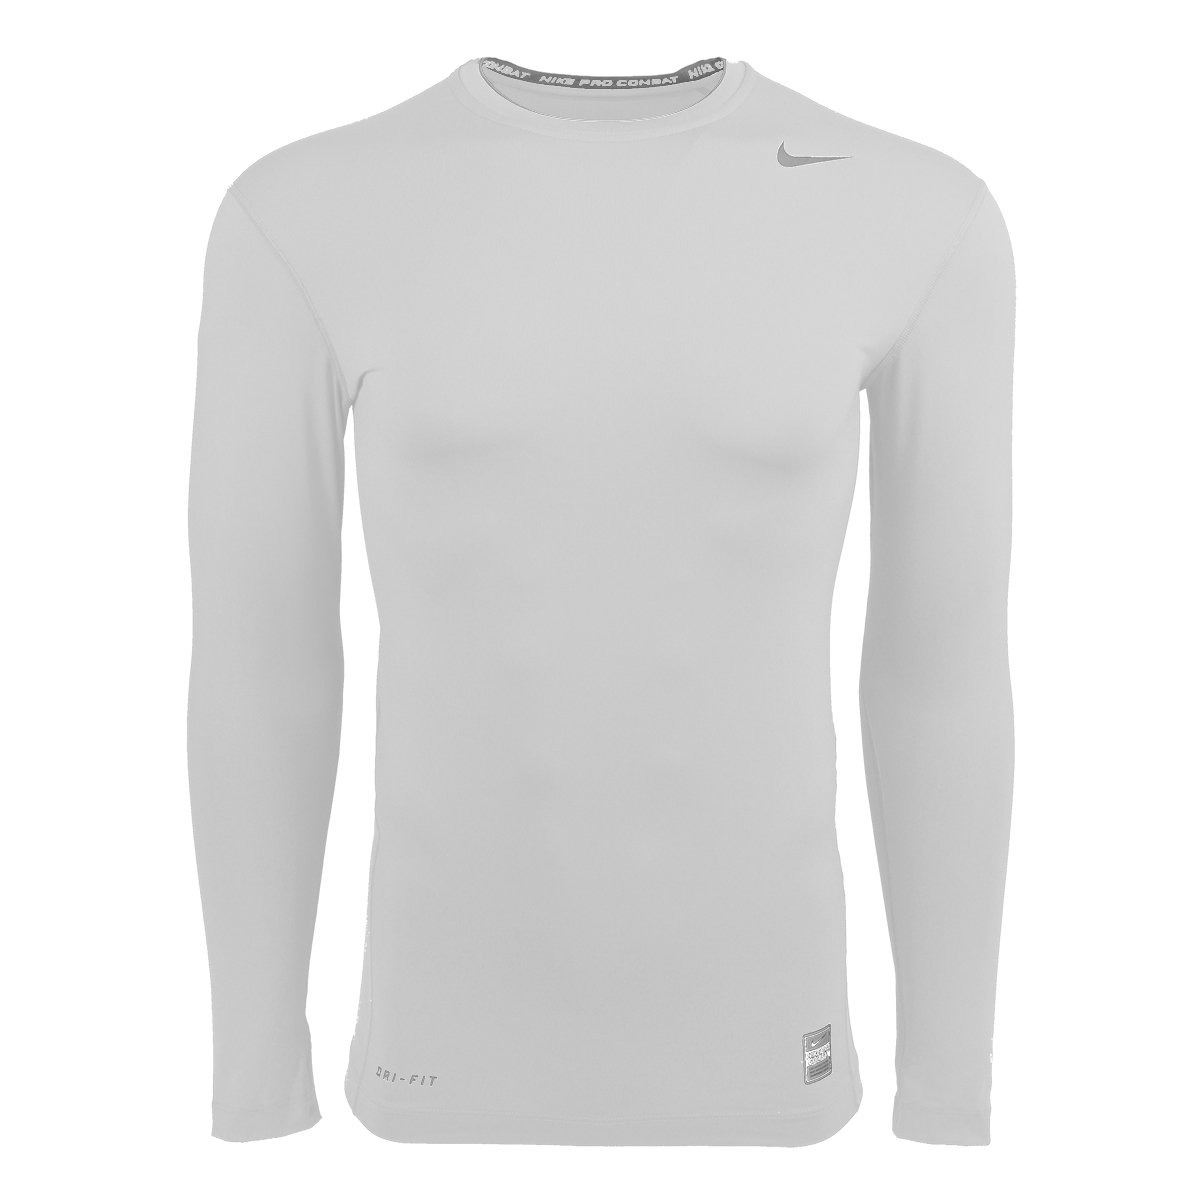 226e8c0759b2 Amazon.com  Nike Men s Pro Combat Core Compression Long-Sleeve Shirt -  White  Clothing